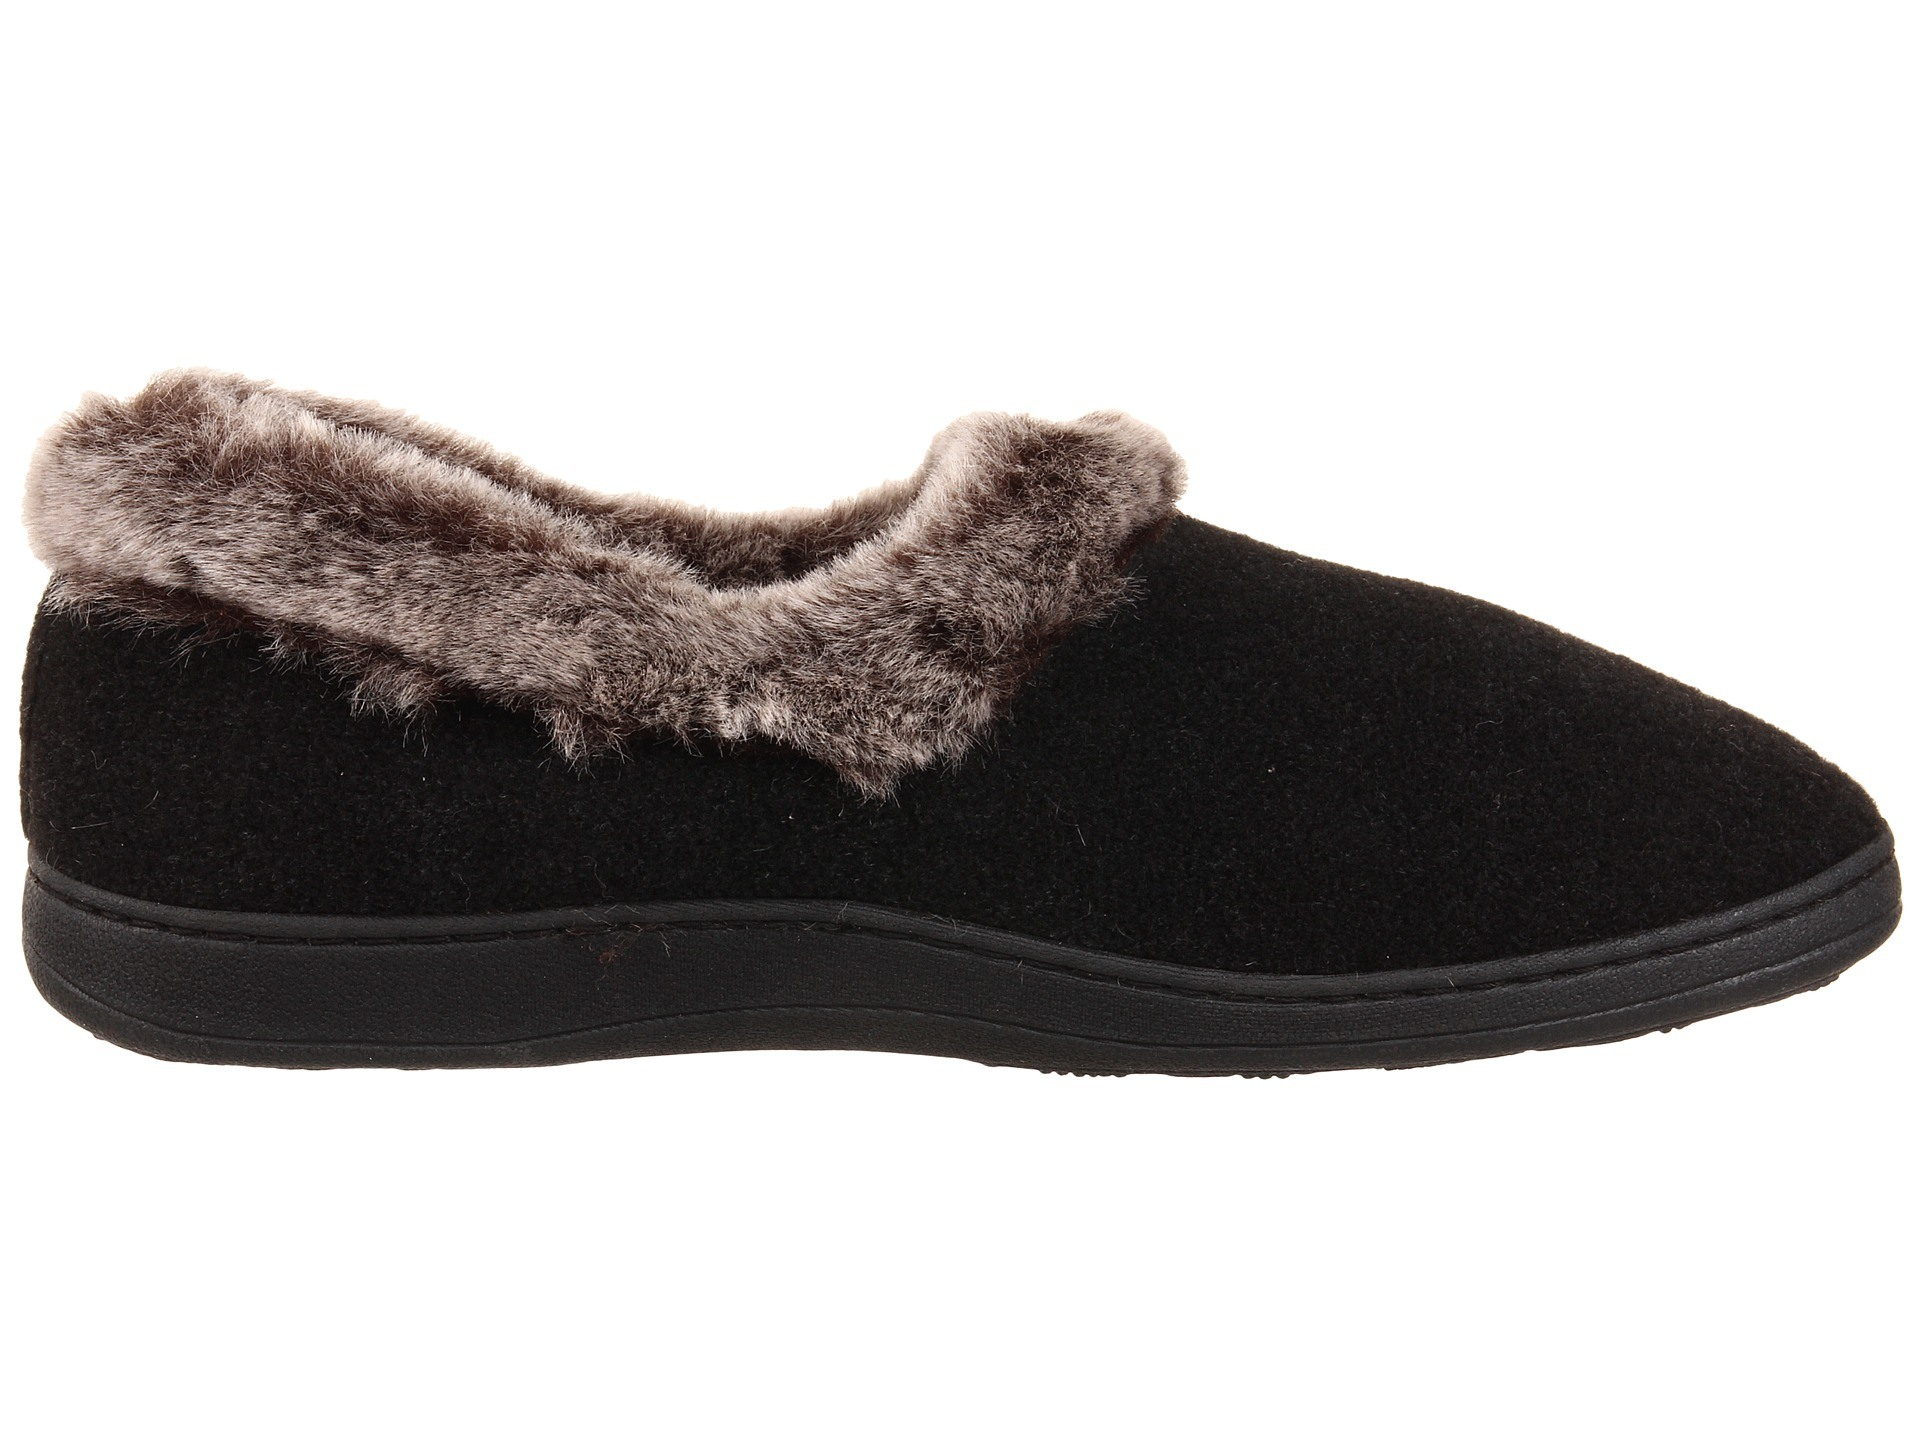 Top Round Fur Warm Memory Foam Slipper